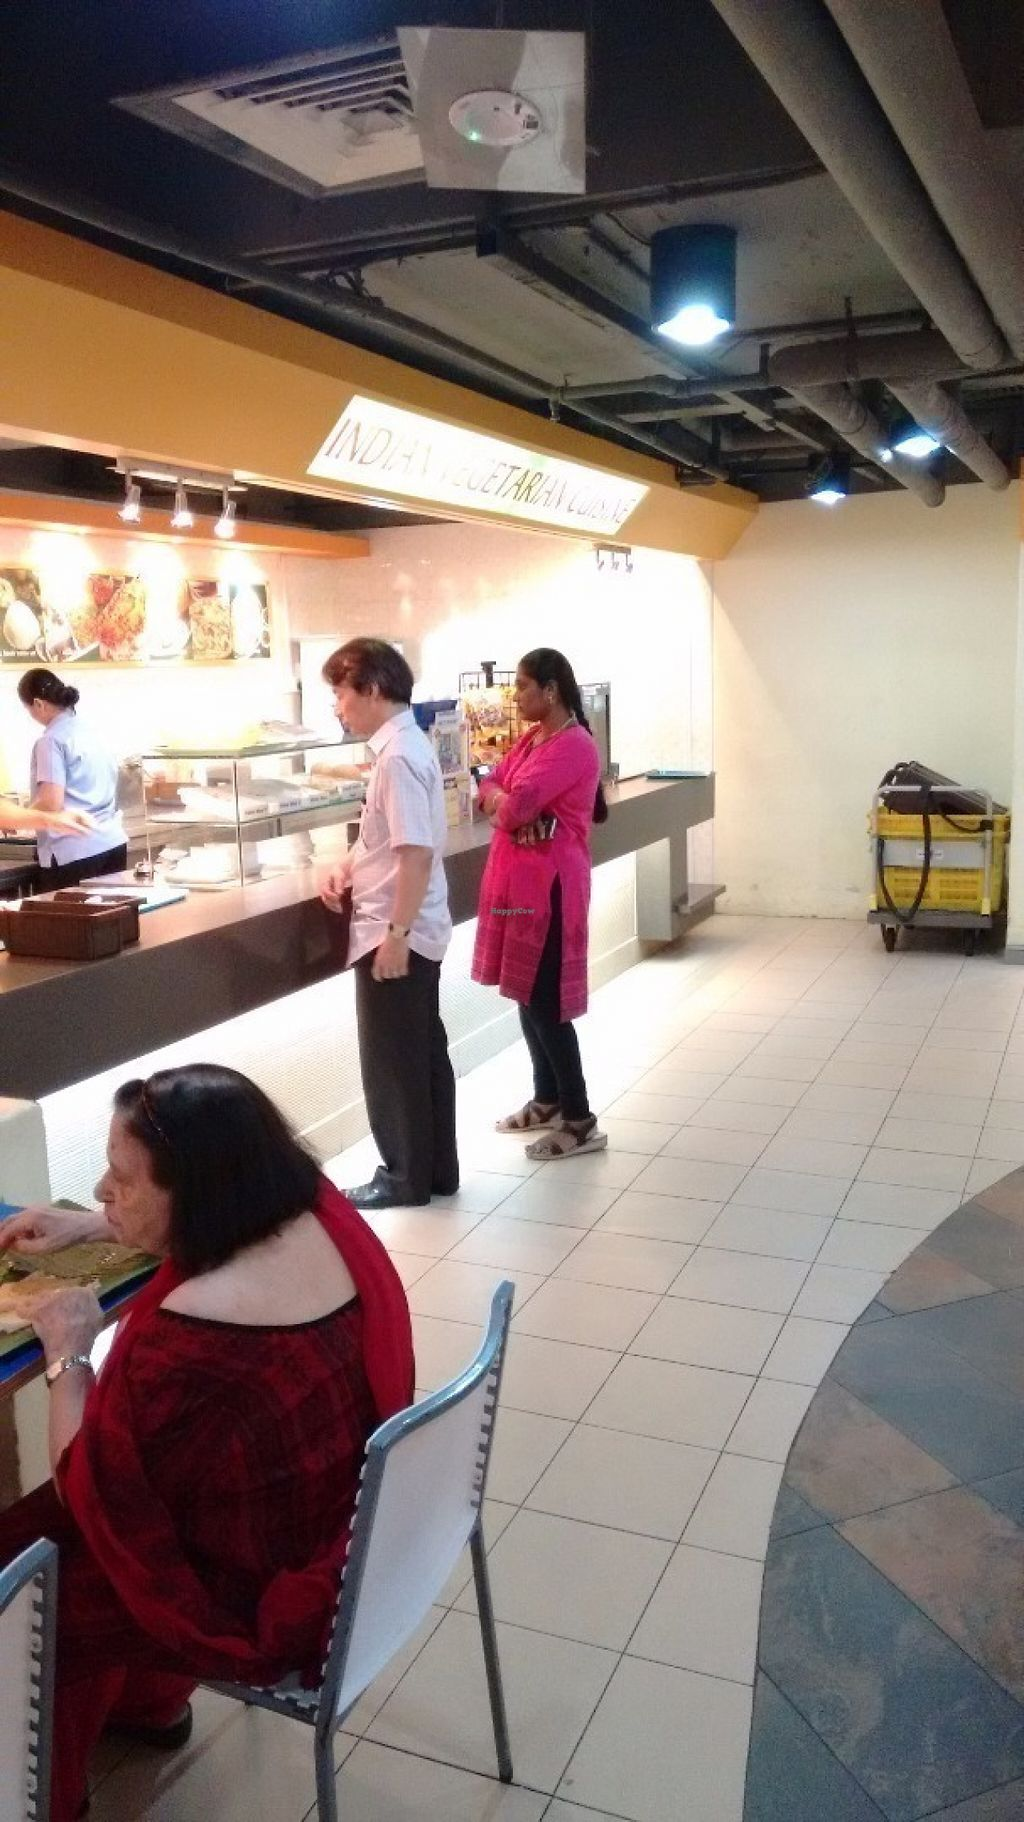 """Photo of Komala's Restaurant - Tanglin Mall  by <a href=""""/members/profile/craigmc"""">craigmc</a> <br/>Serving counter <br/> July 17, 2016  - <a href='/contact/abuse/image/36273/160459'>Report</a>"""